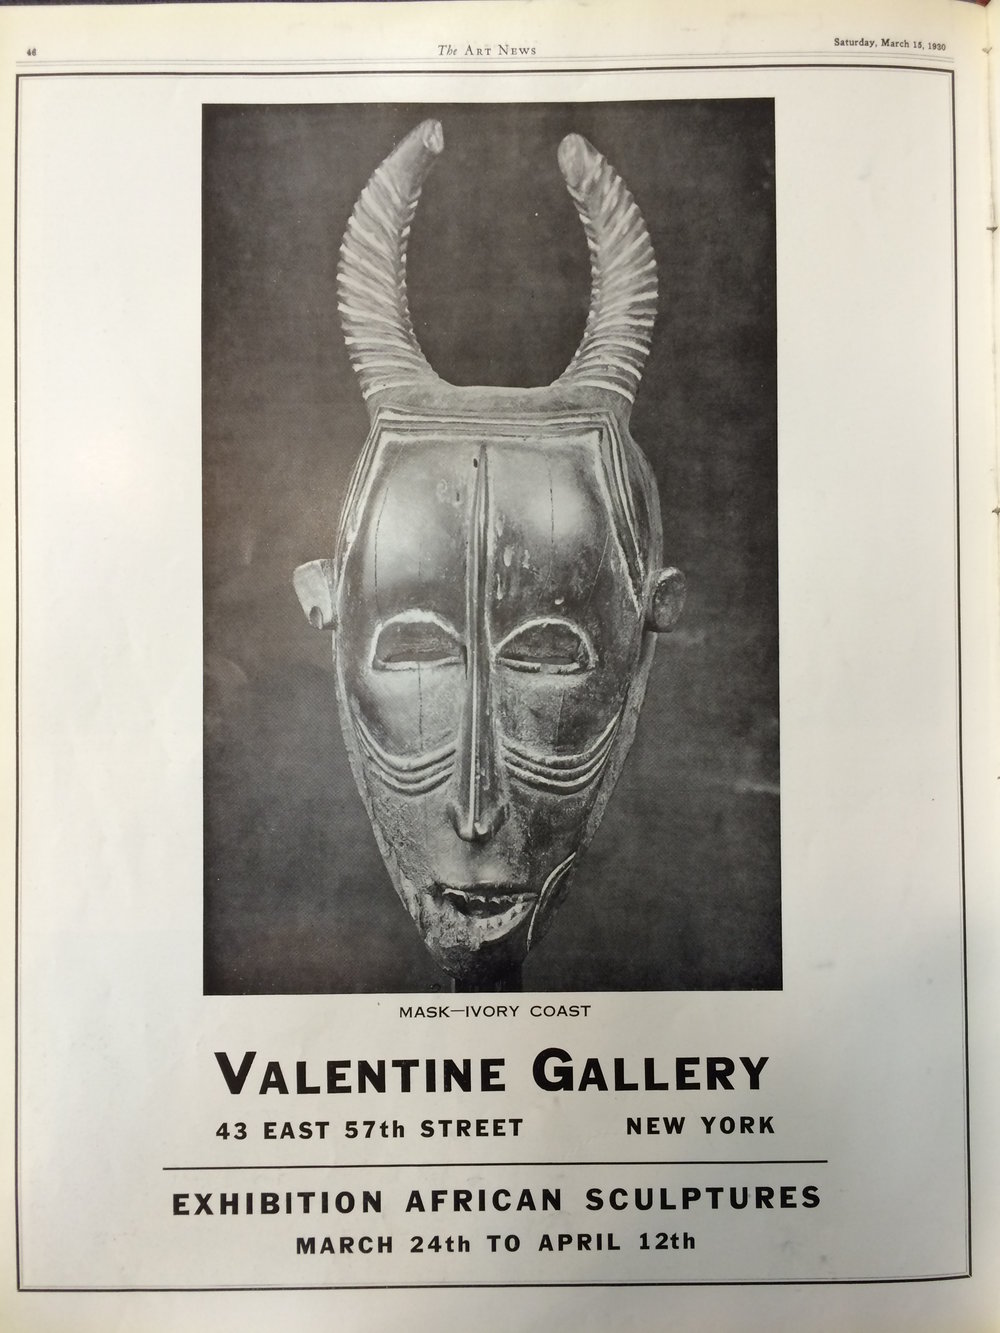 The Paul Guillaume Collection Of African Art Comes To The Valentine